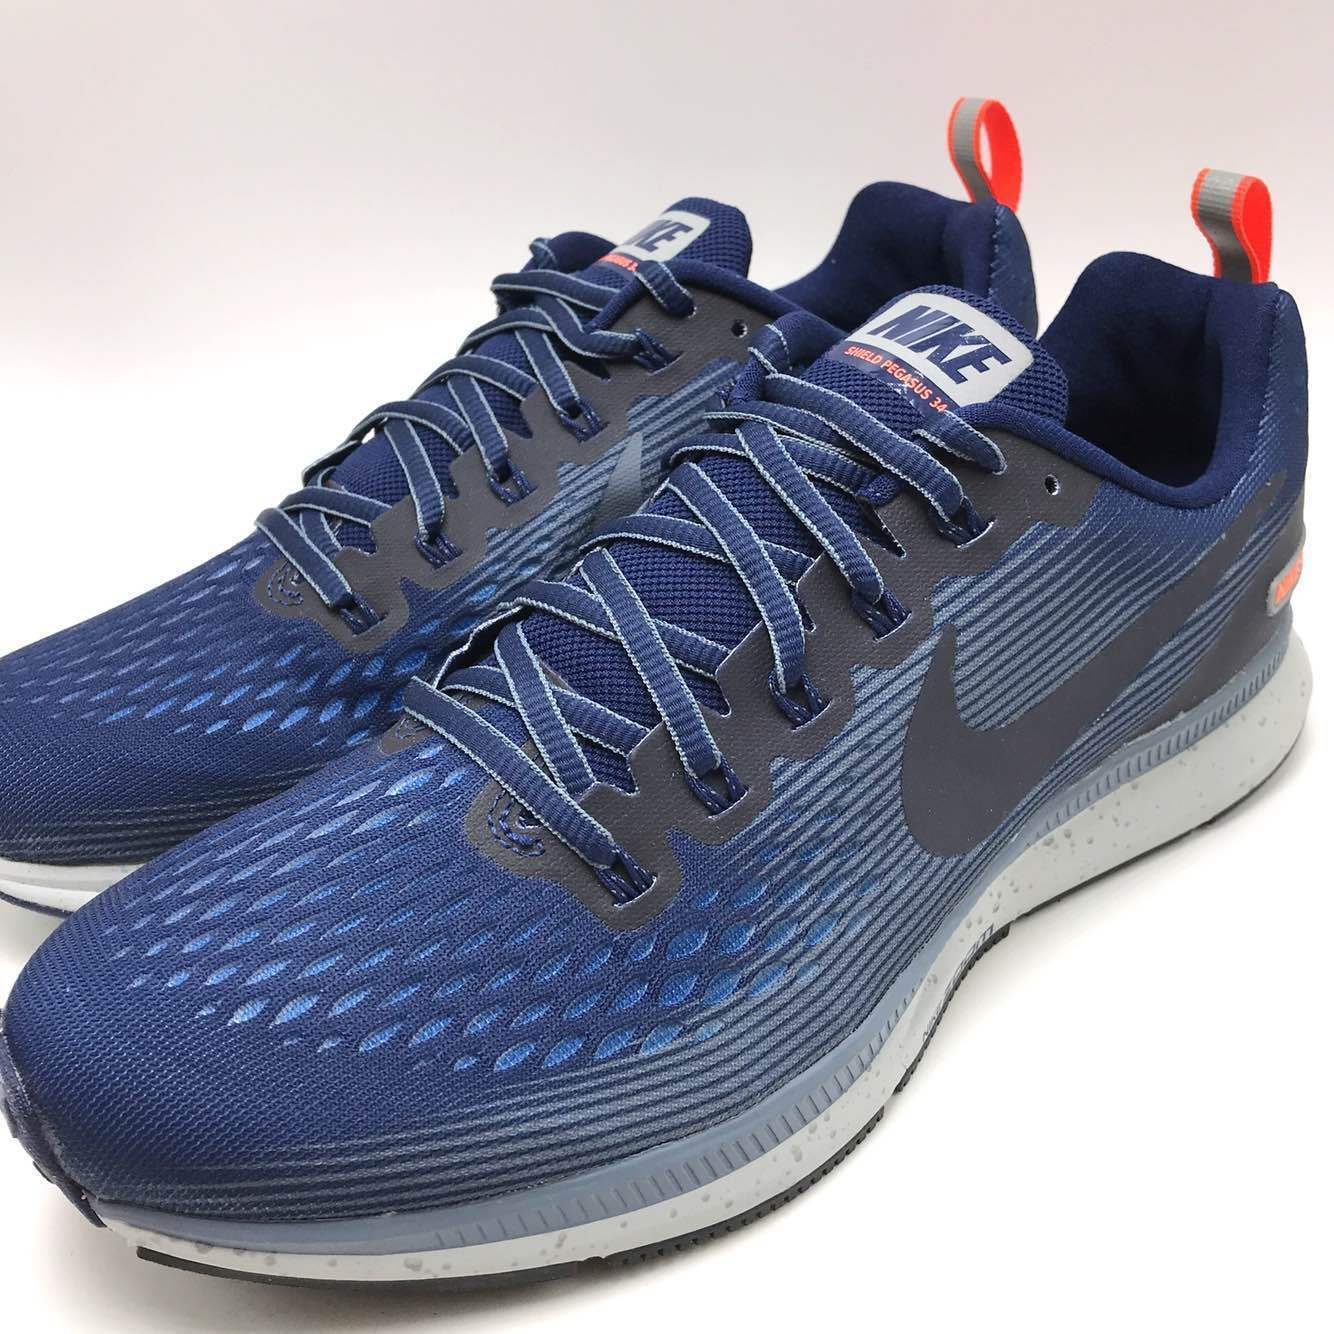 Nike Air Zoom Pegasus 34 Shield Men's Running Binary bluee Obsidian 907327 400